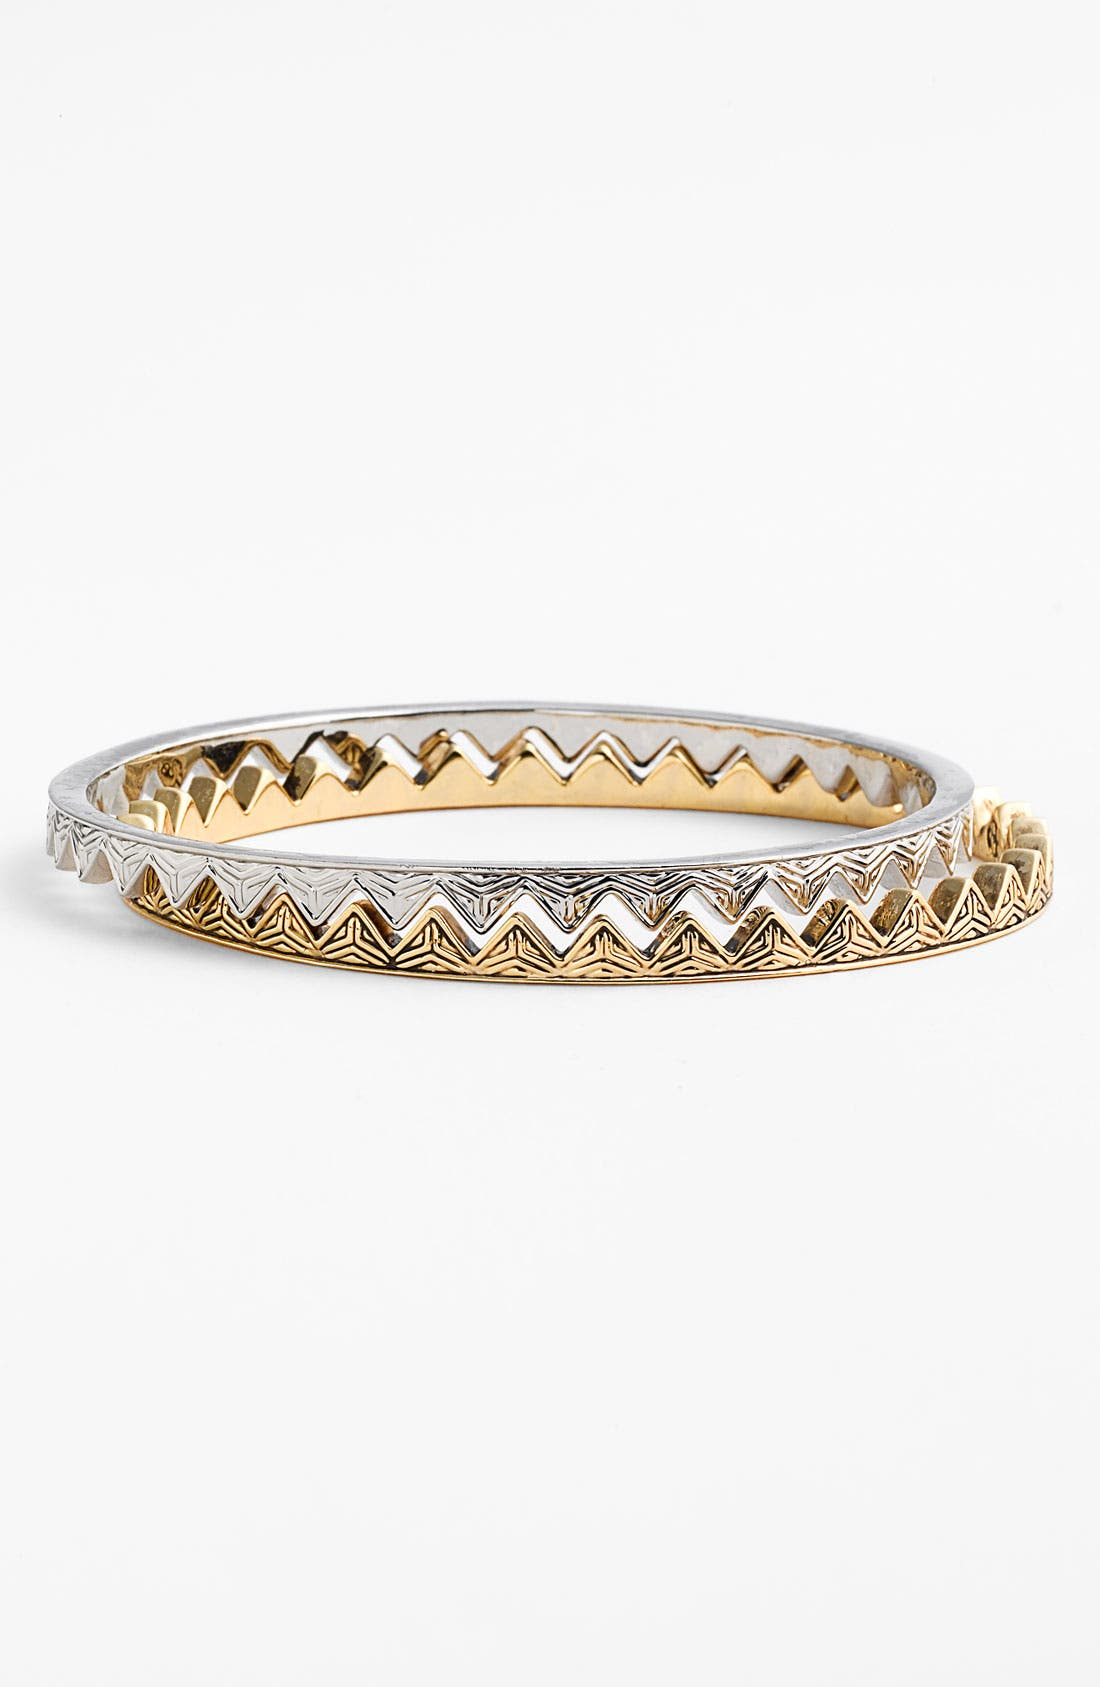 Alternate Image 1 Selected - House of Harlow 1960 Engraved Triangle Bangles (Set of 2)